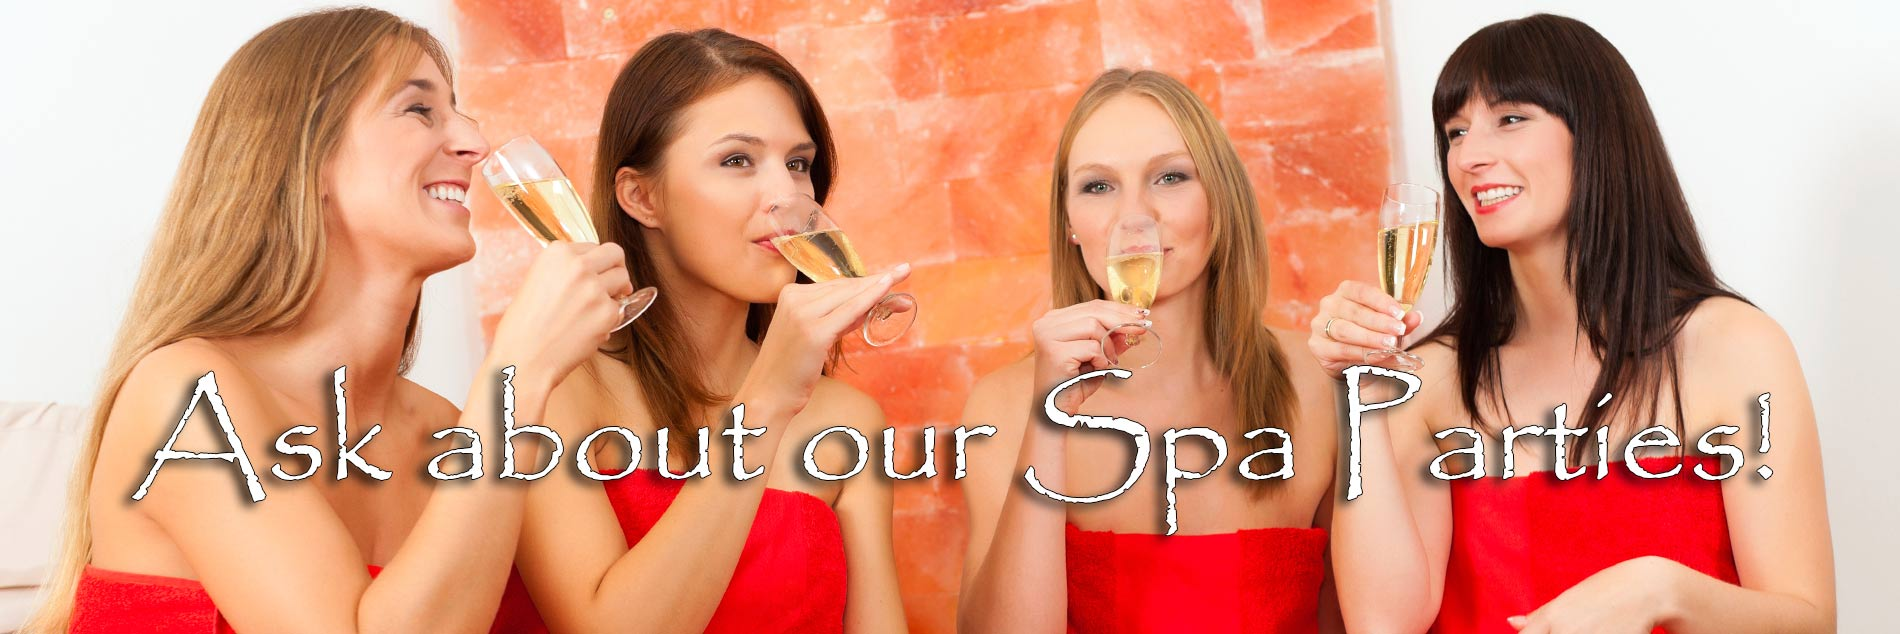 Ask about our Chic Spa Parties!